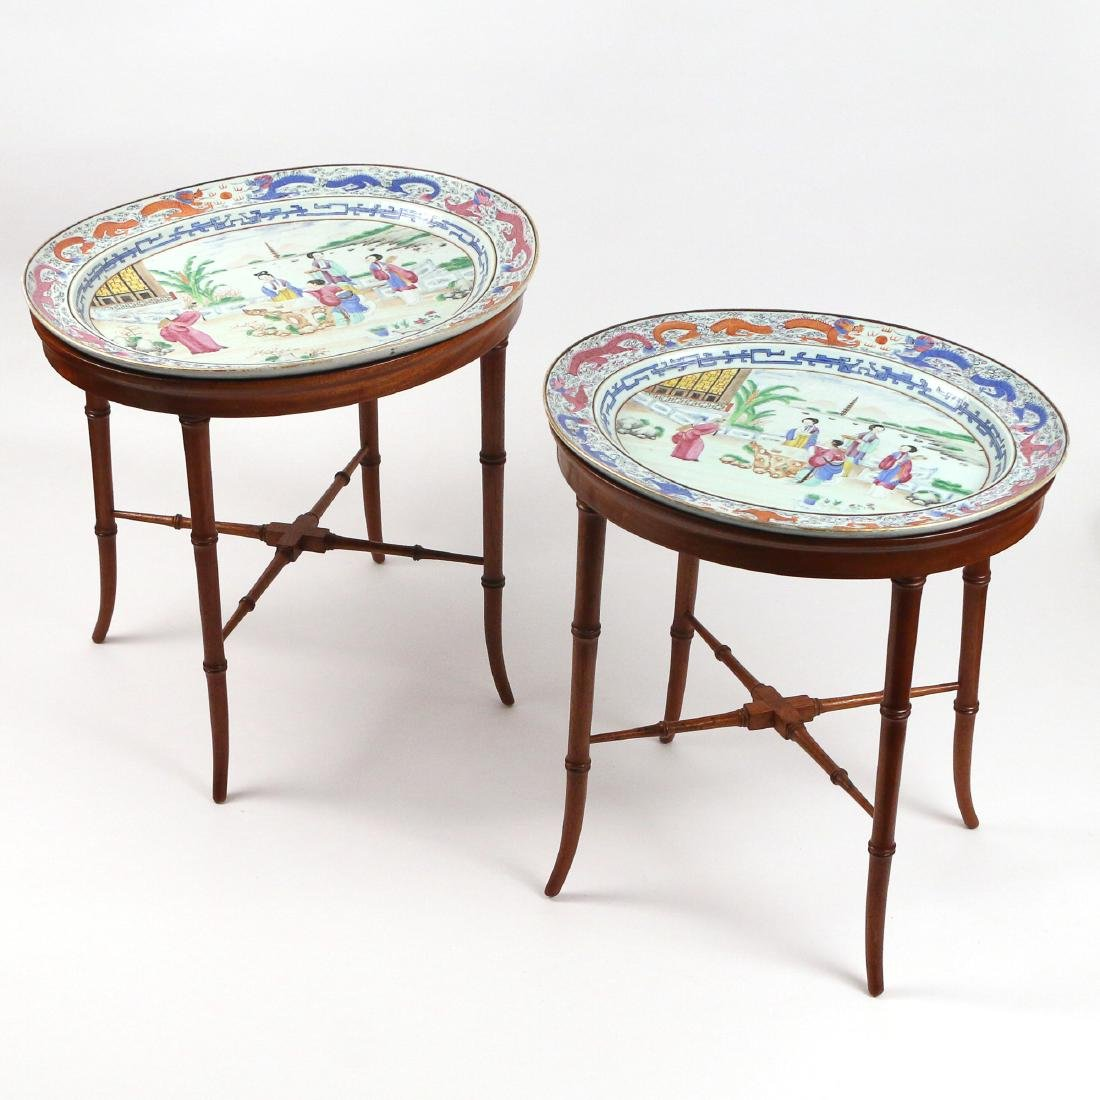 PAIR CHINESE EXPORT PORCELAIN PLATTERS & STANDS - 9